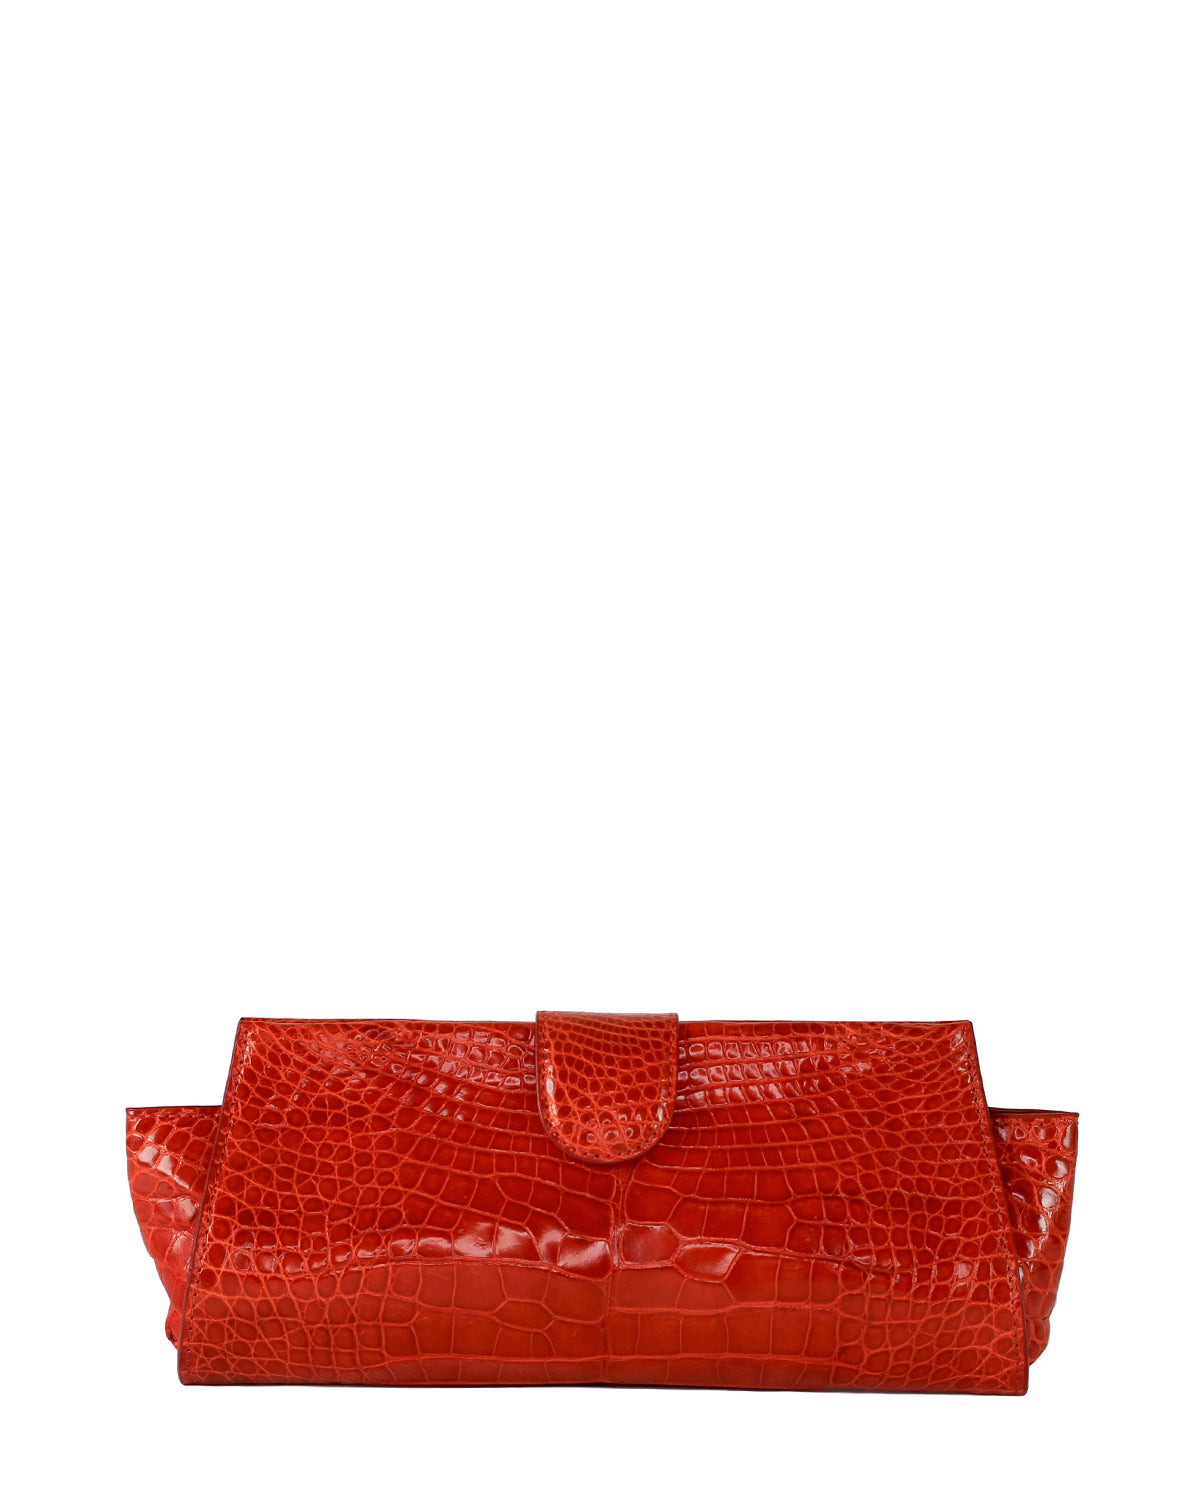 YB Red Croco Alligator Evening Clutch Front View